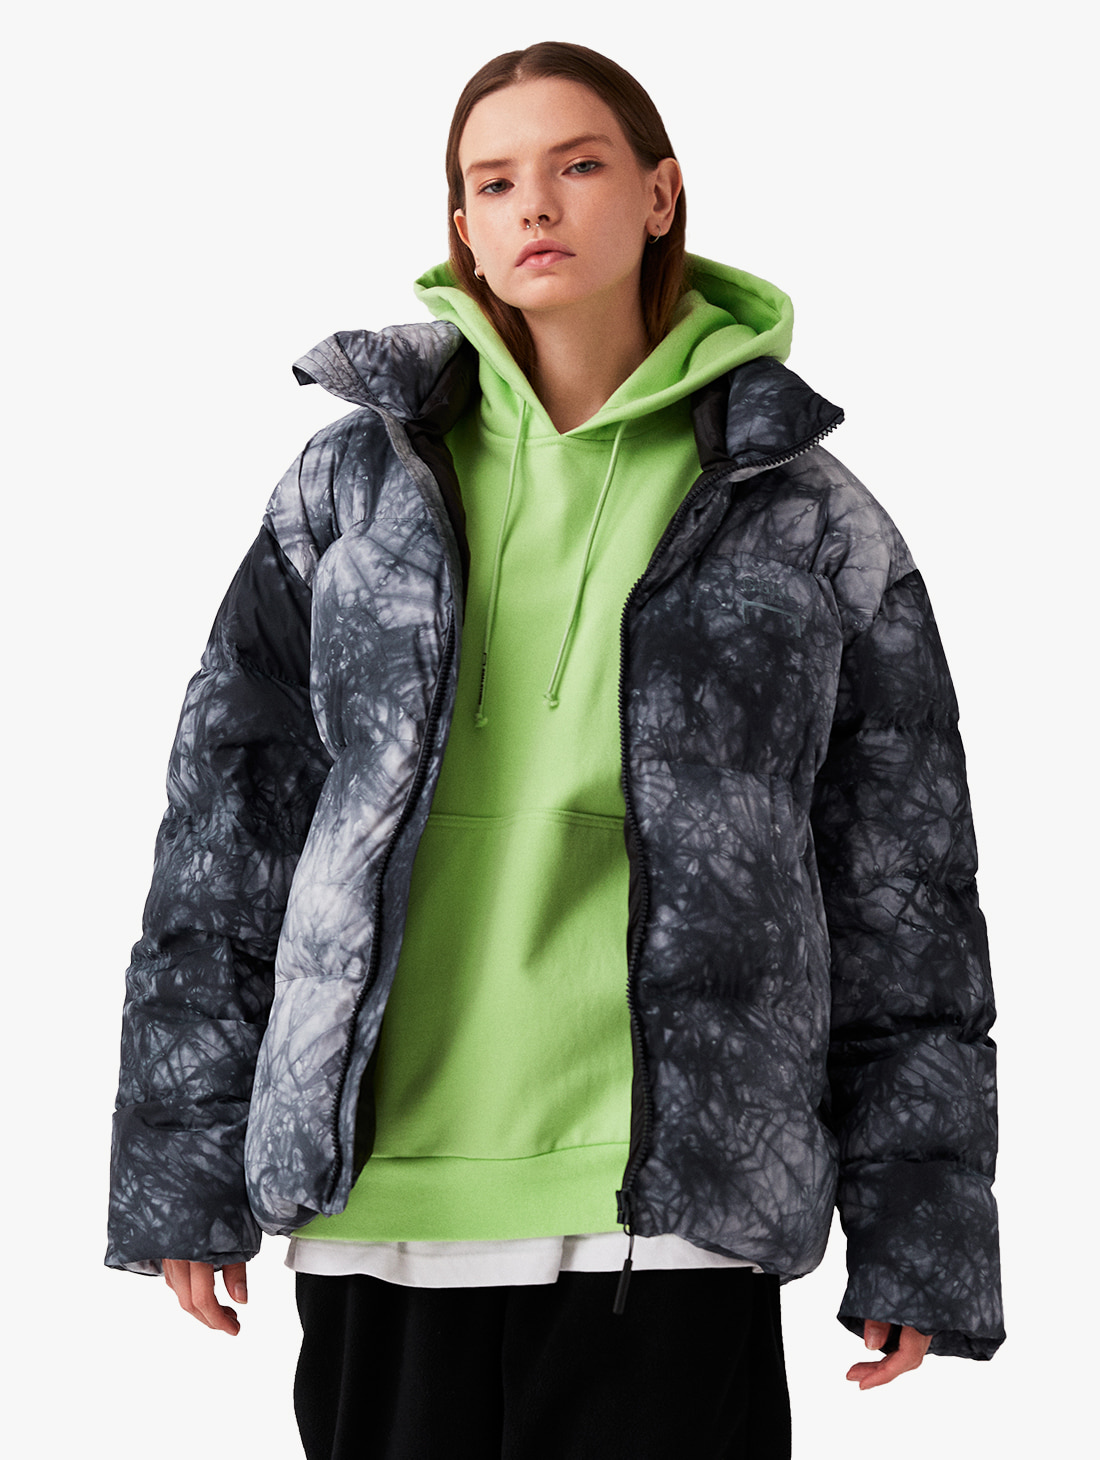 GOALSTUDIO TIE DYE DOWN JACKET